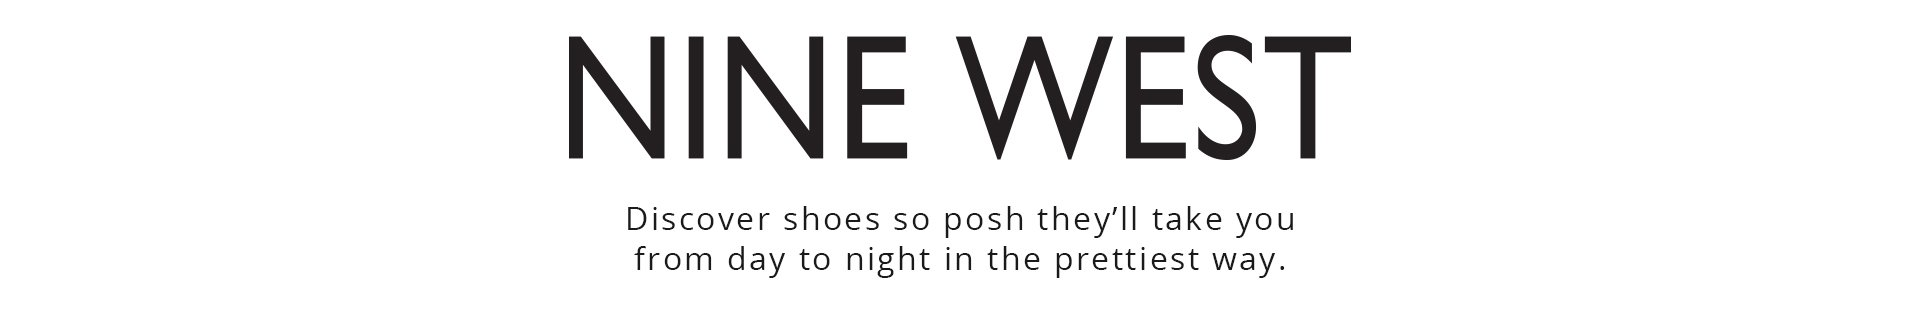 Nine West Header